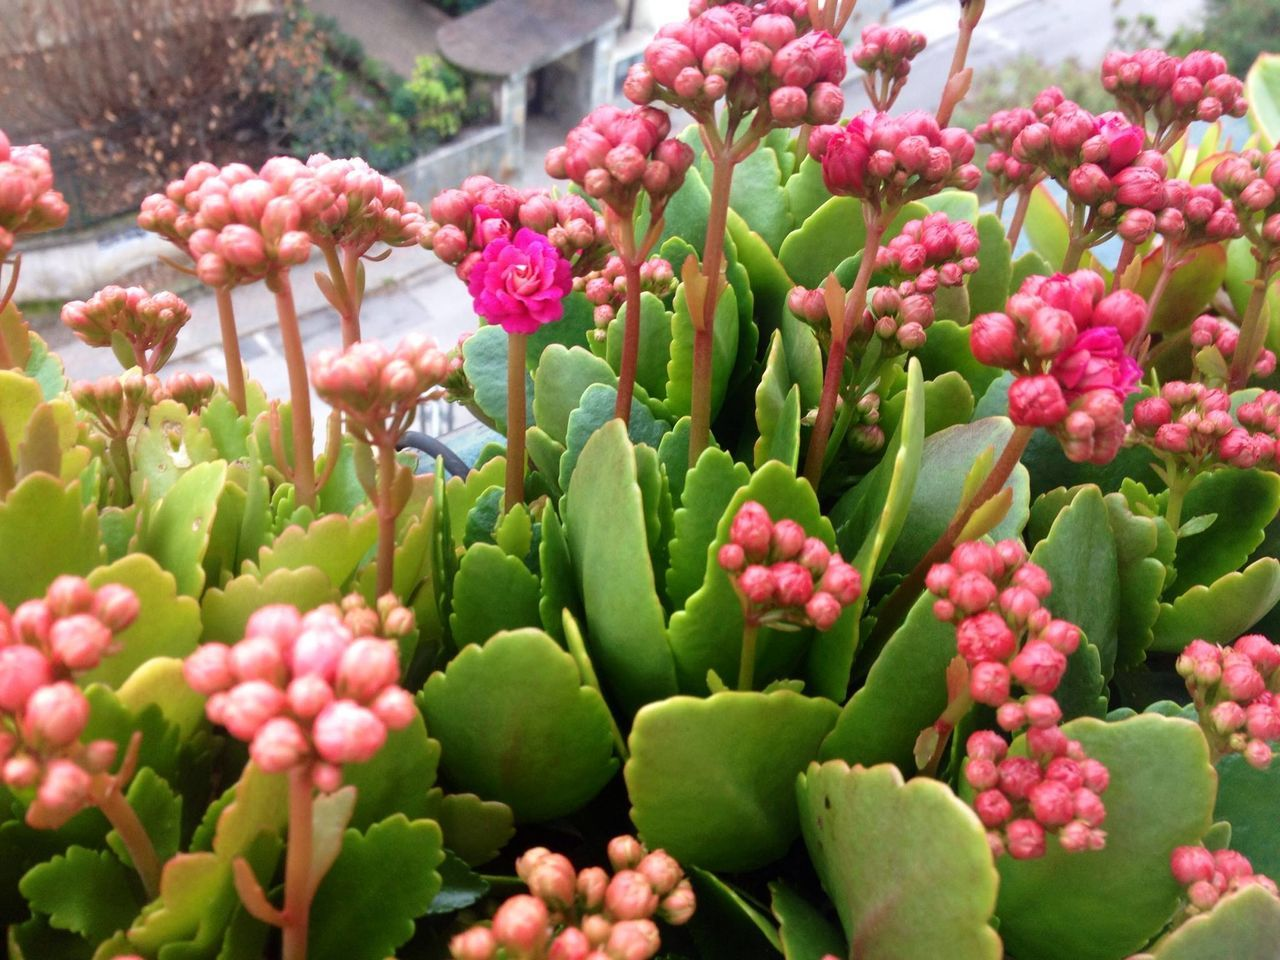 Abundance Beauty In Nature Blooming Botany Close-up Februaryphotochallenge Flower Flower Head Fragility Freshness Growth Nature No People Petal Pink Color Plant Winter Bloom Winter Blooms